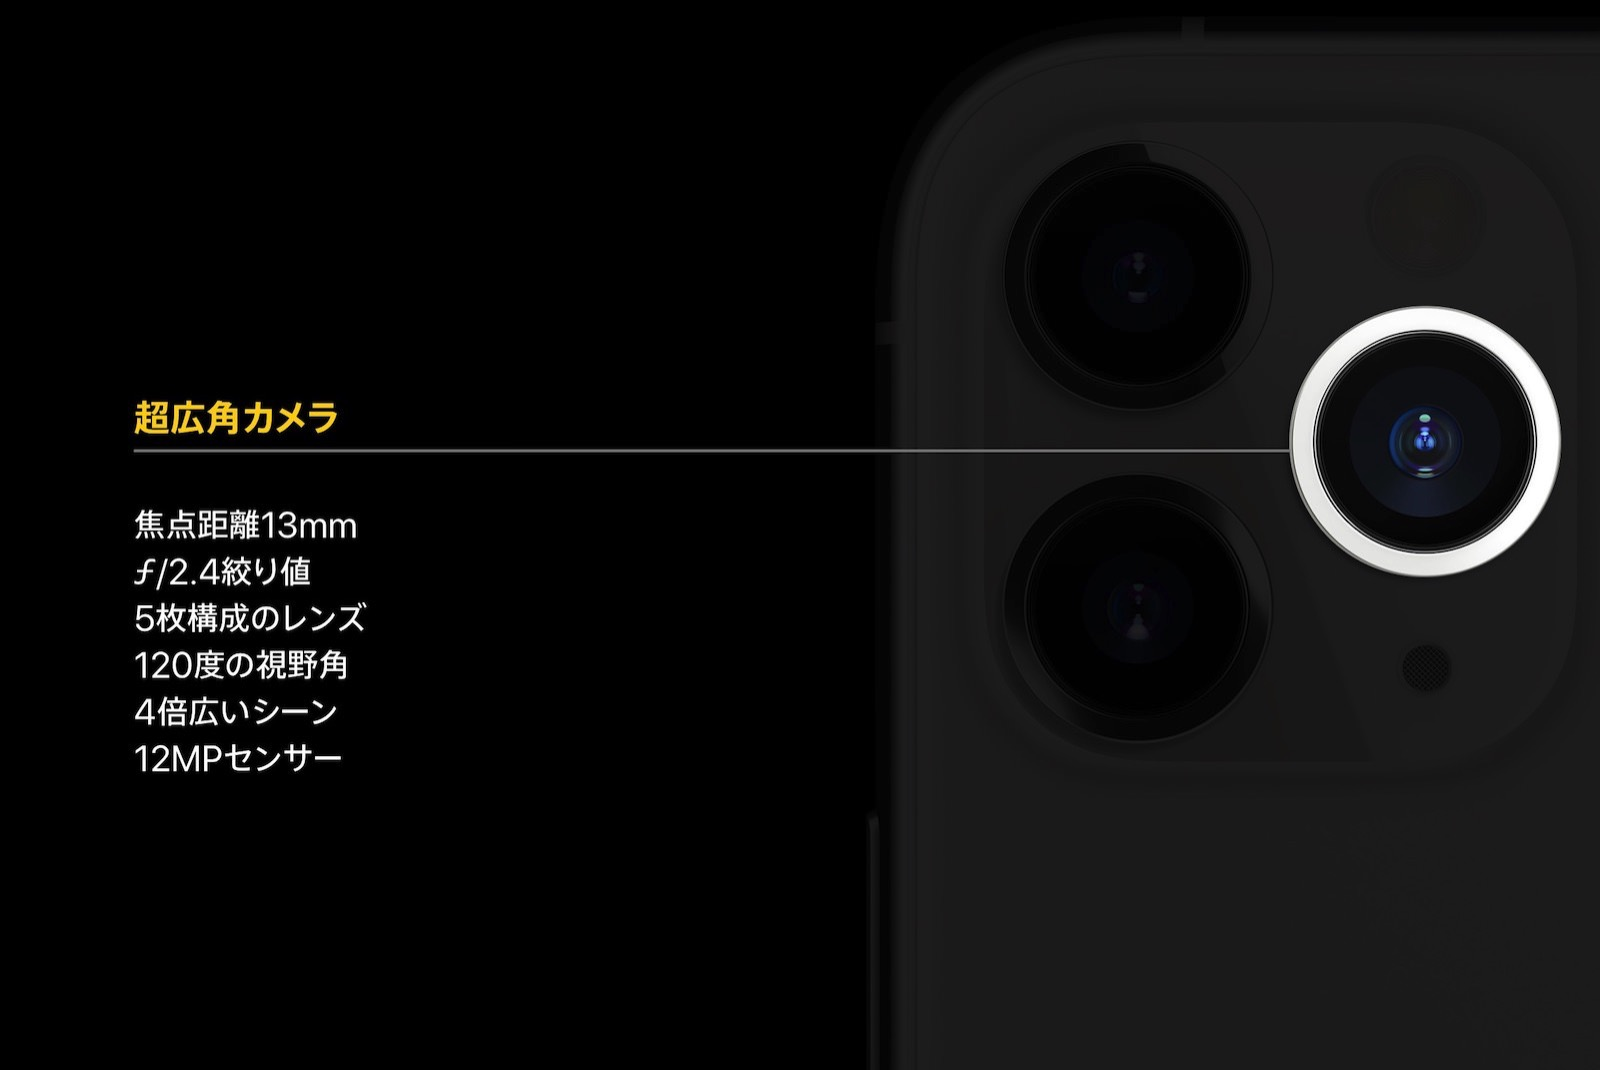 Ultrawide lens for iphone11 series